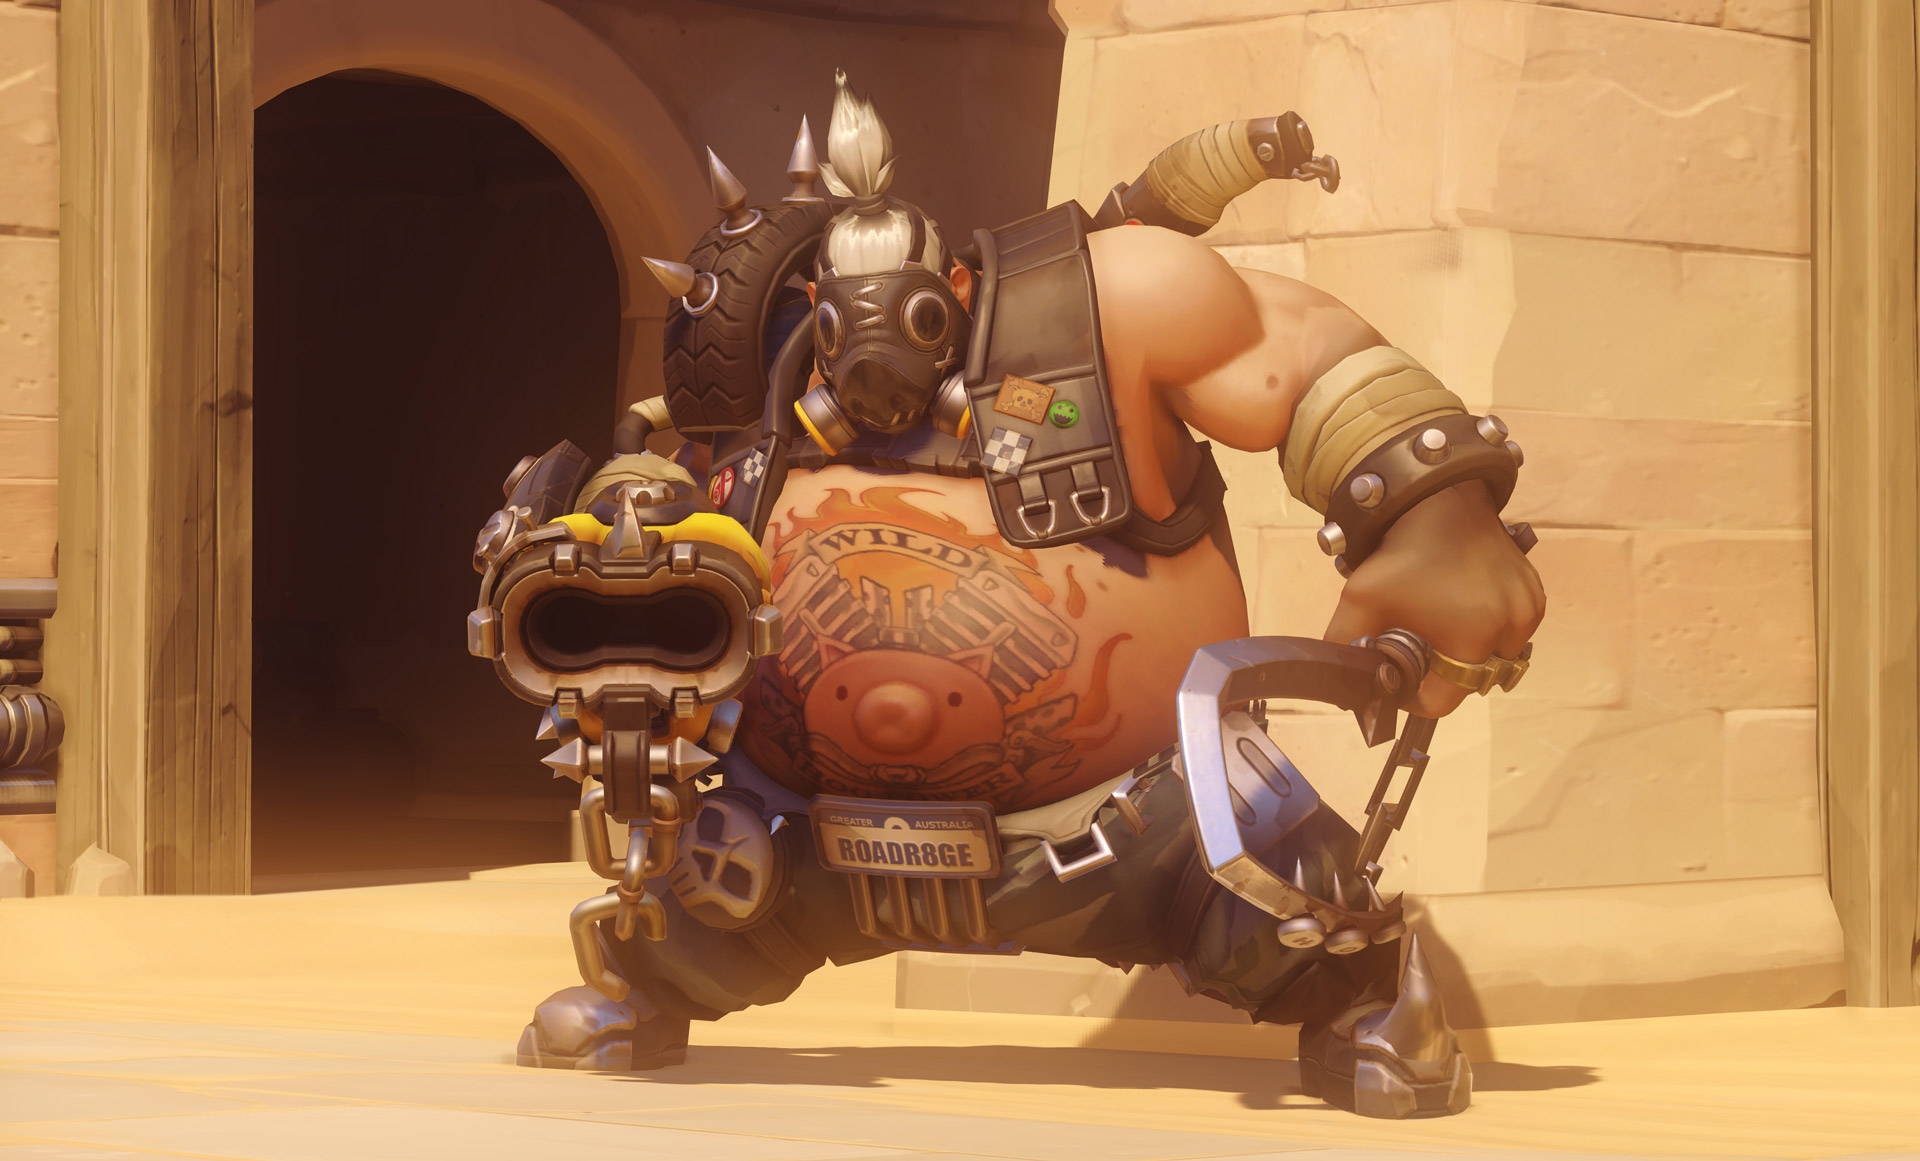 https://blzgdapipro-a.akamaihd.net/media/screenshot/roadhog-screenshot-004.jpg